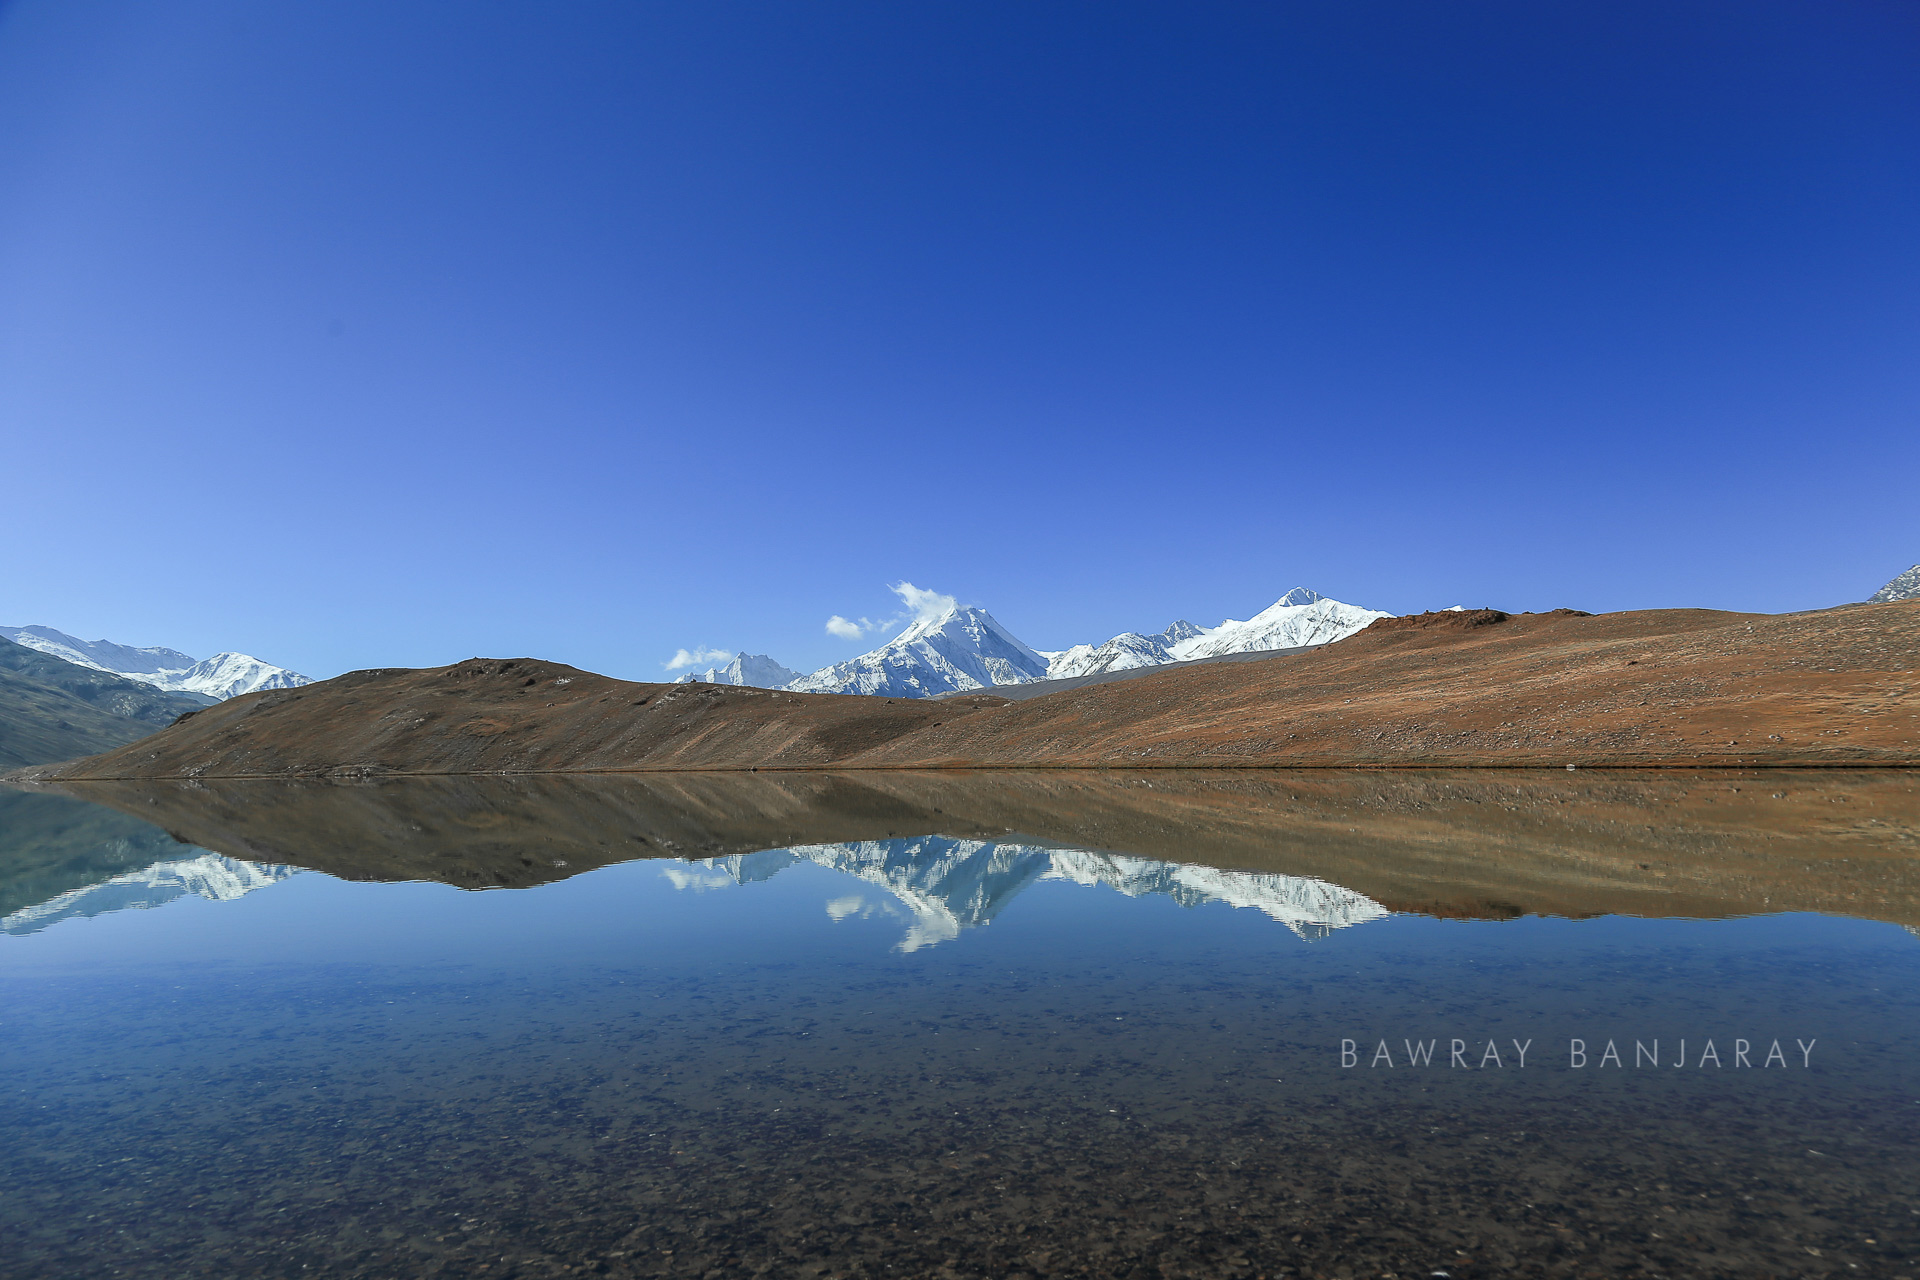 Chandra Taal is a crecent lake in Himachal Pradesh